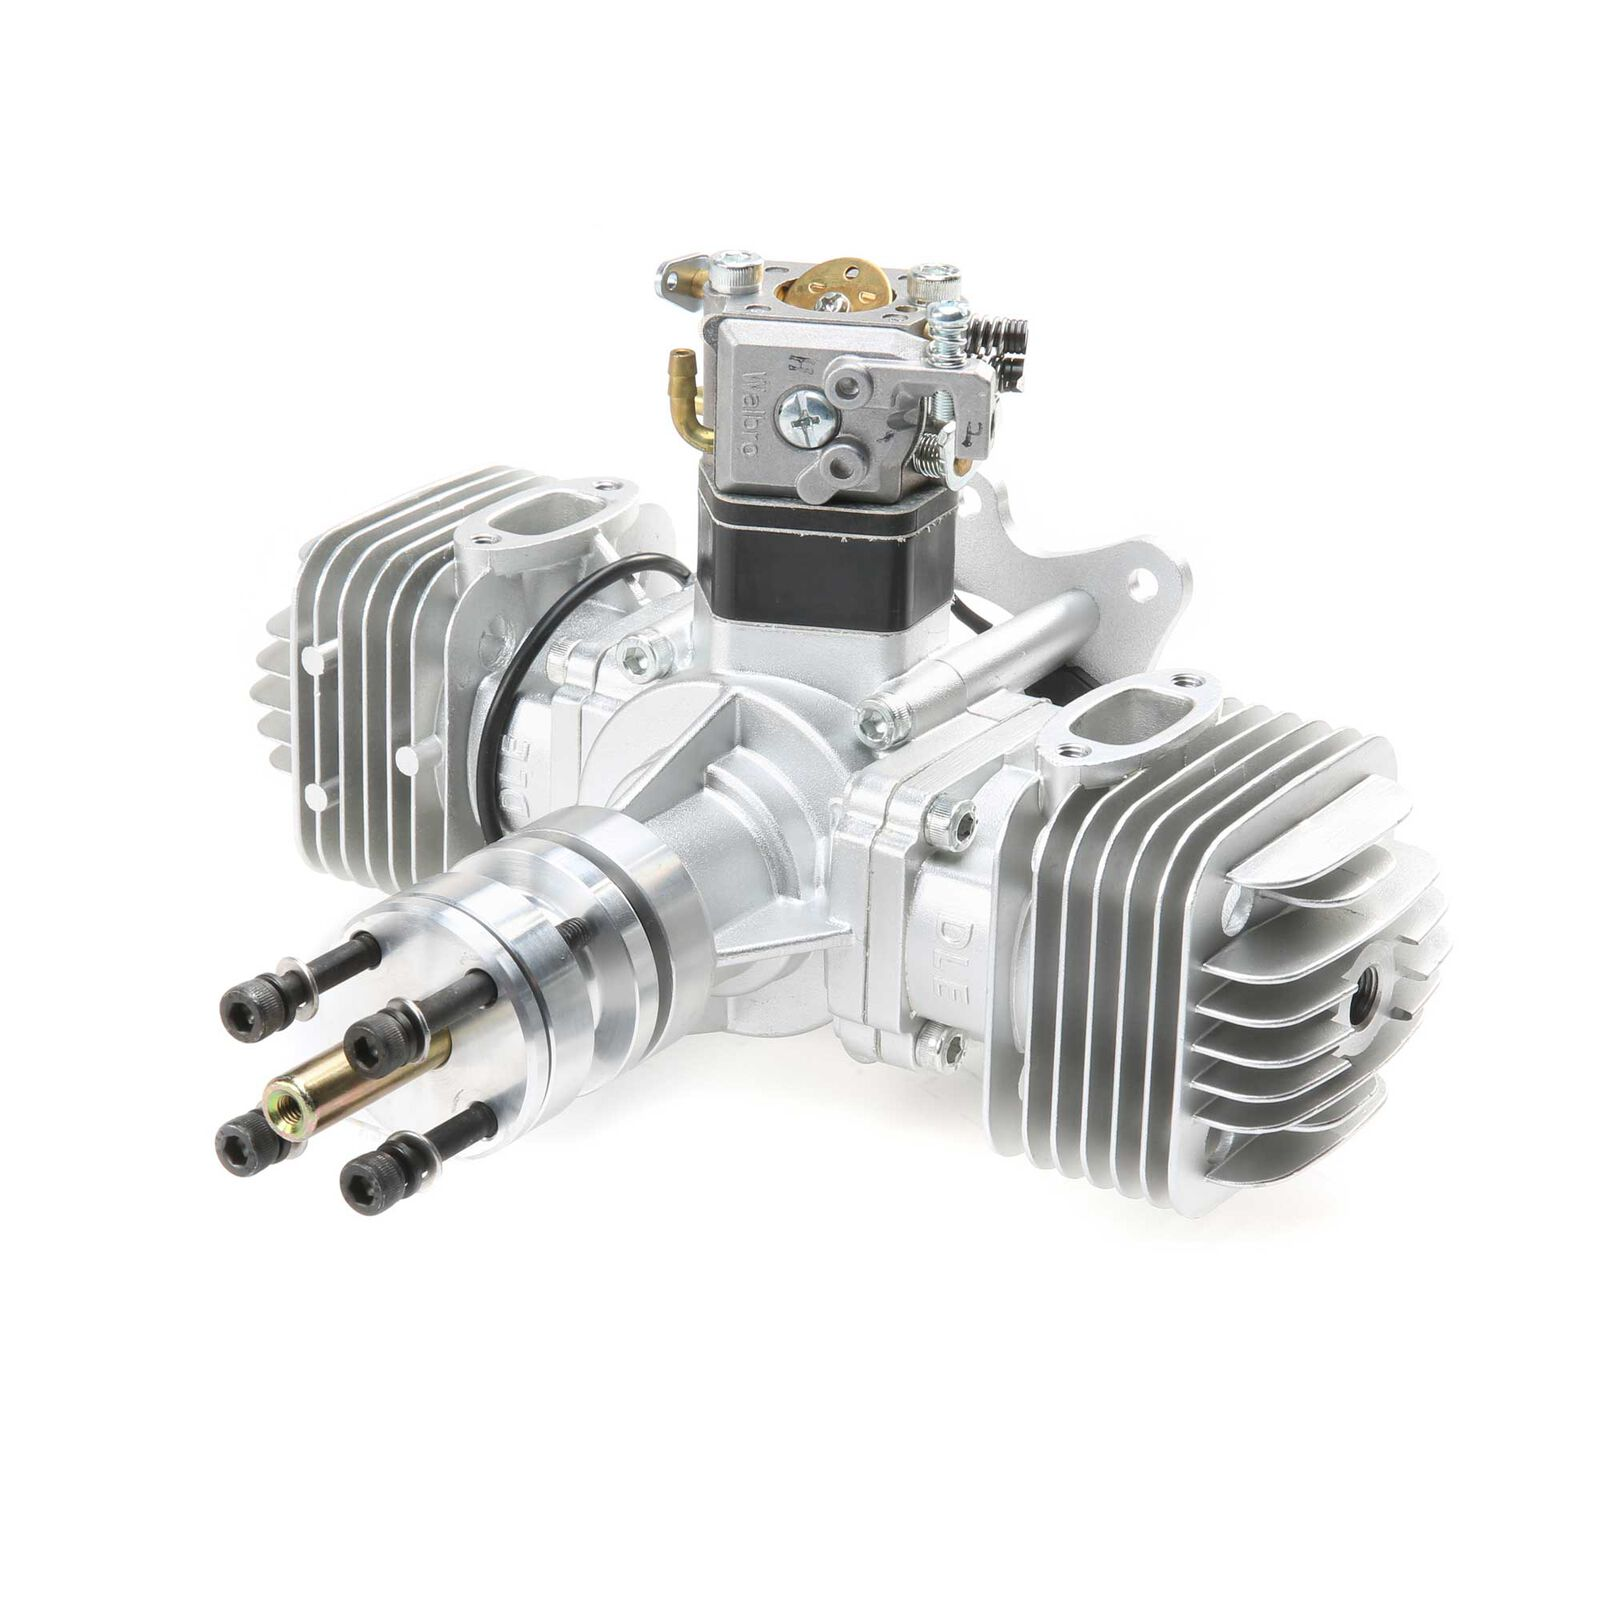 DLE-60 60cc Twin Gas Engine with Electronic Ignition and Mufflers